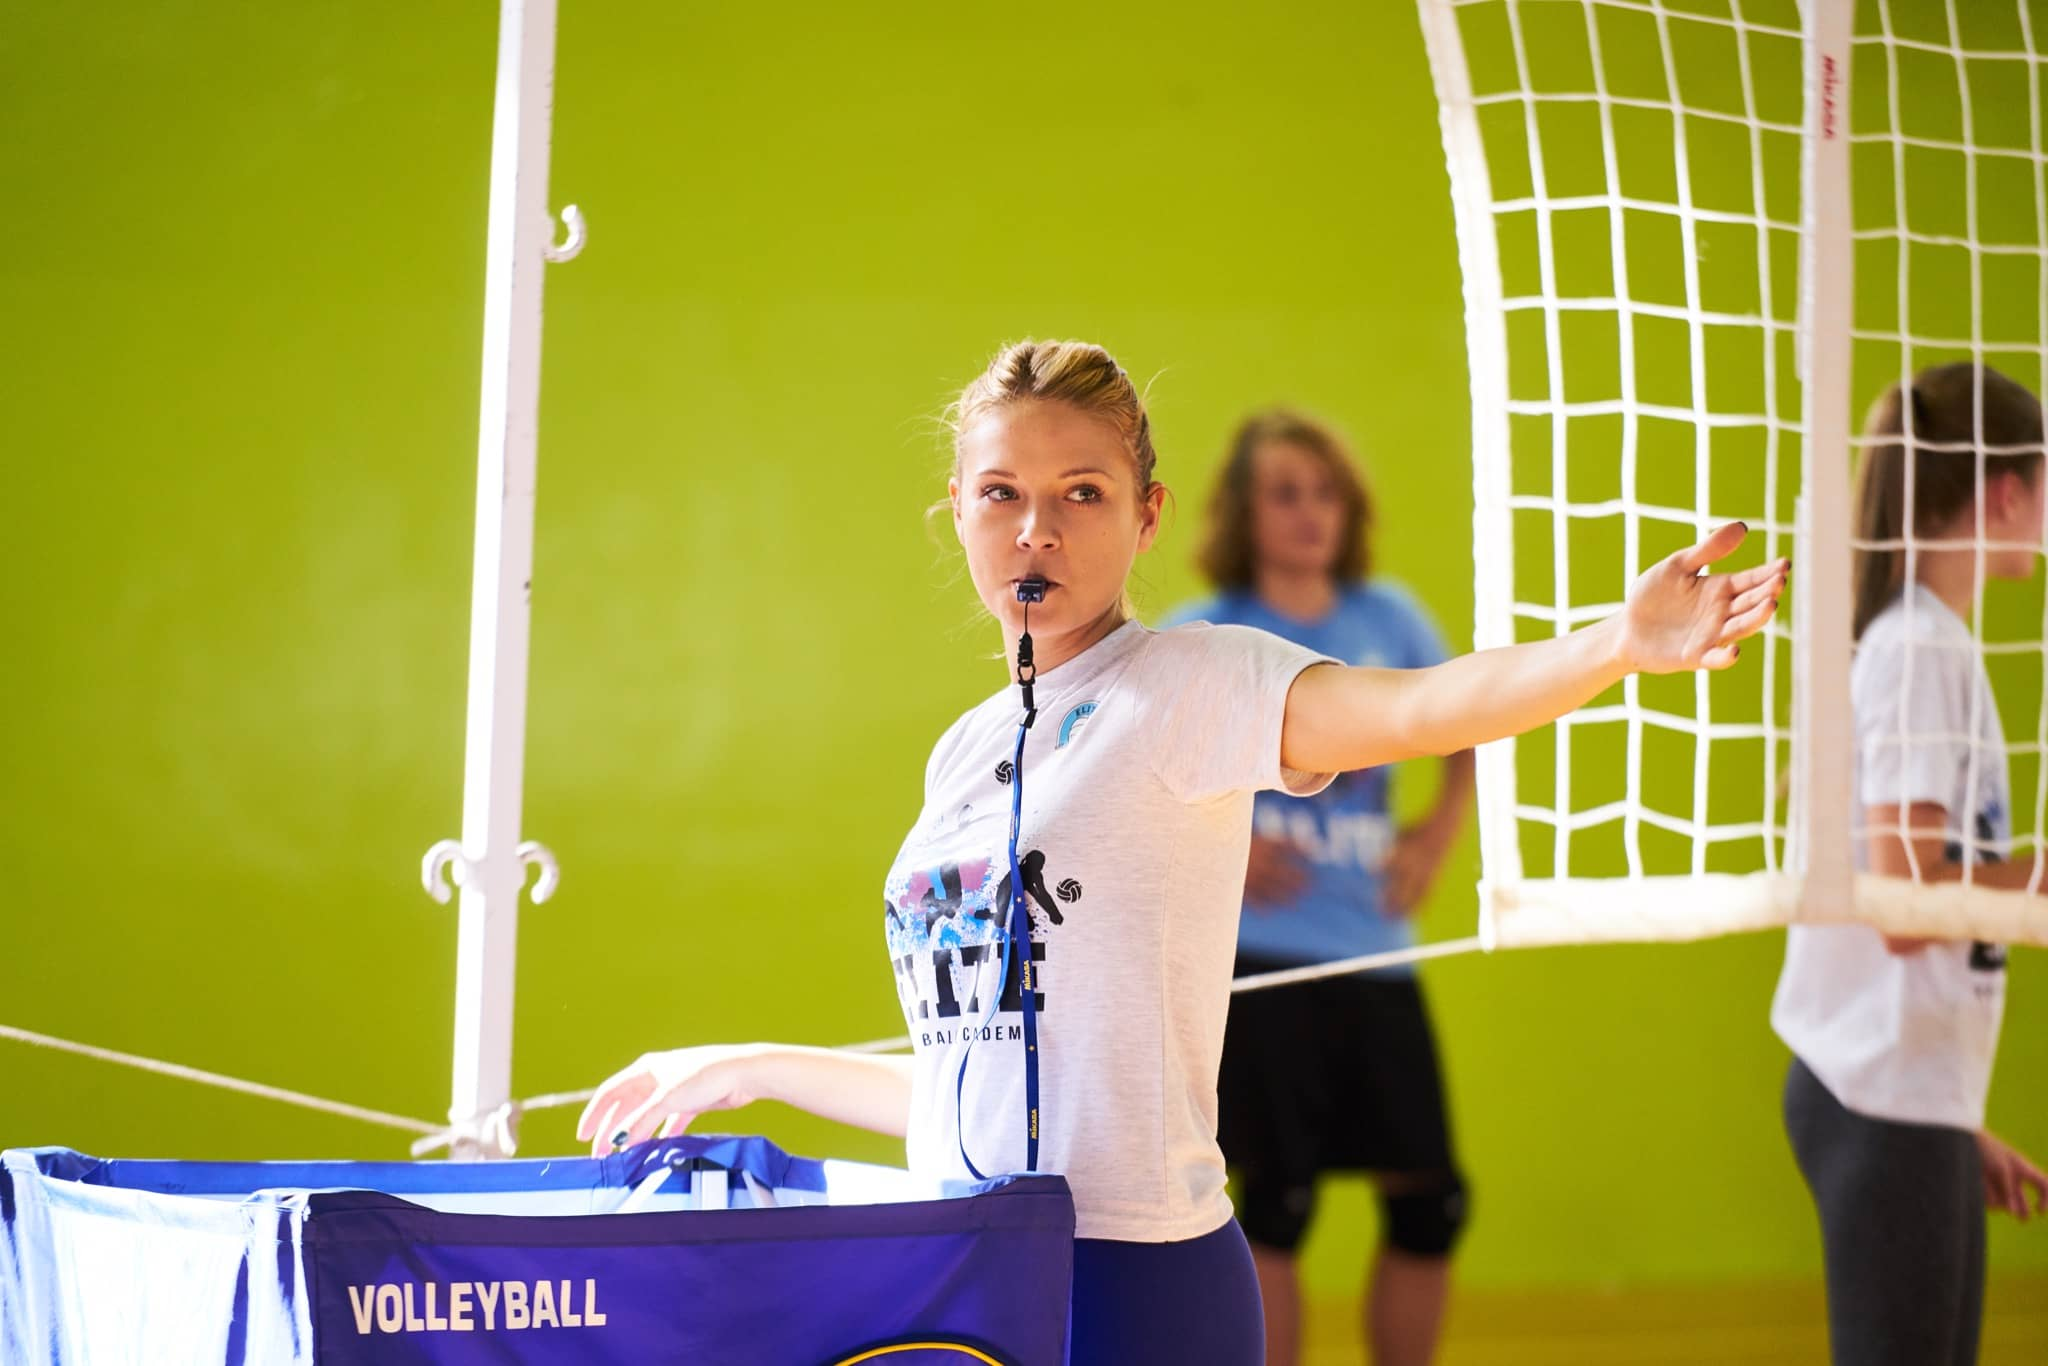 volleyball-academy-dubai-photo-00010